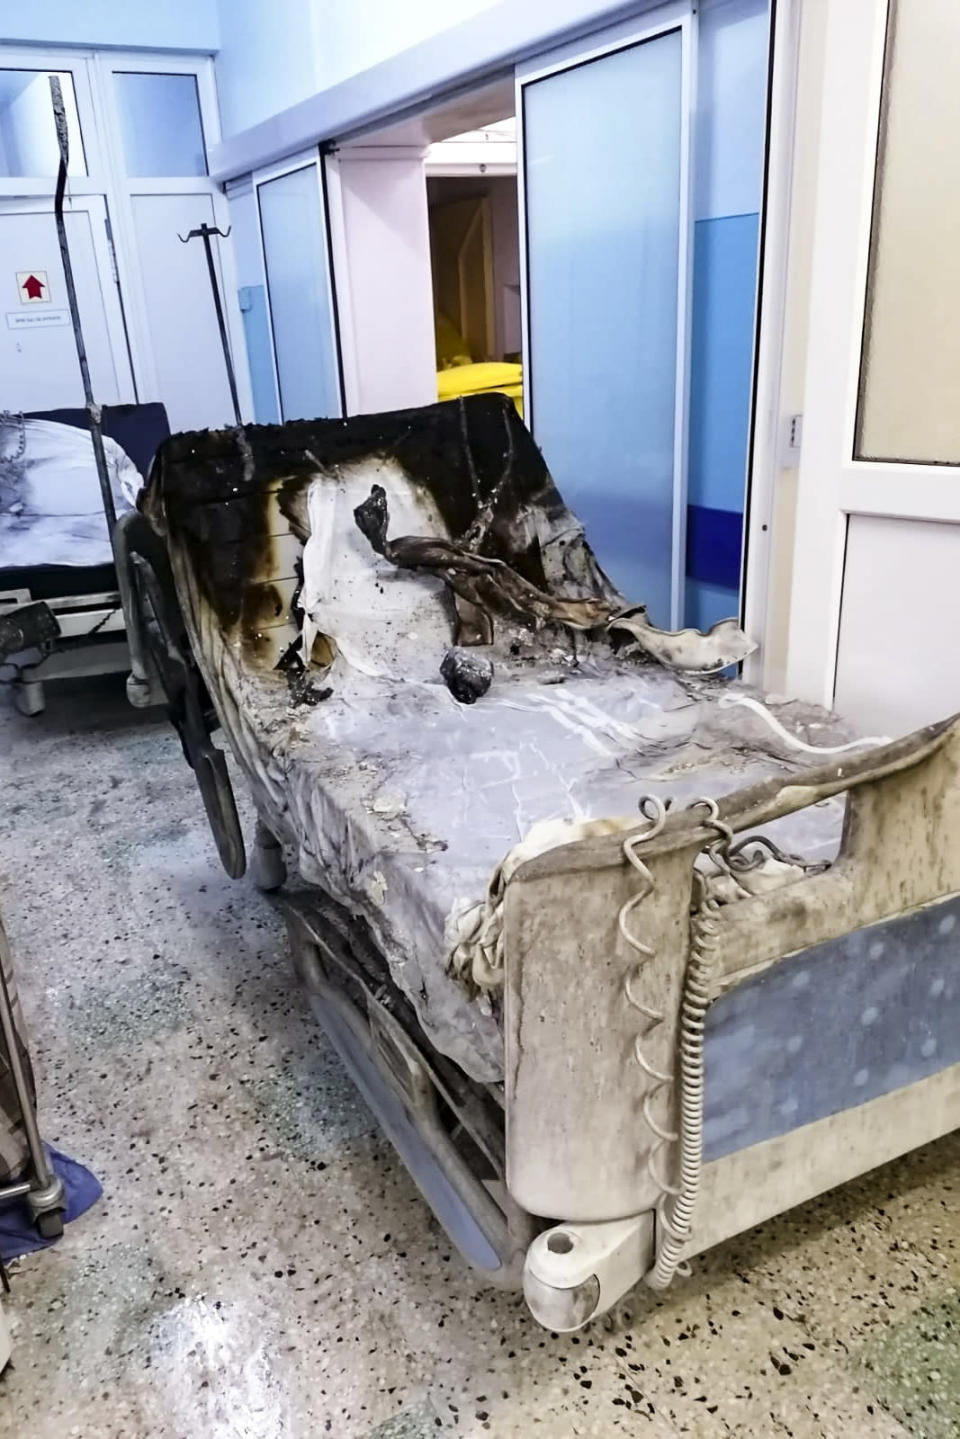 A burned bed from the destroyed COVID-19 intensive care ward at the hospital in Piatra Neamt, northern Romania, Saturday, Nov. 14, 2020, is placed in a corridor after a fire. Romanian officials say a fire at a hospital treating COVID-19 patients has killed 10 people and critically injured seven others as a blaze spread through the intensive care ward designated for people with COVID-19 patients at the public hospital according to the Emergency Situations Inspectorate.(Exploziv TV Neamt via AP)